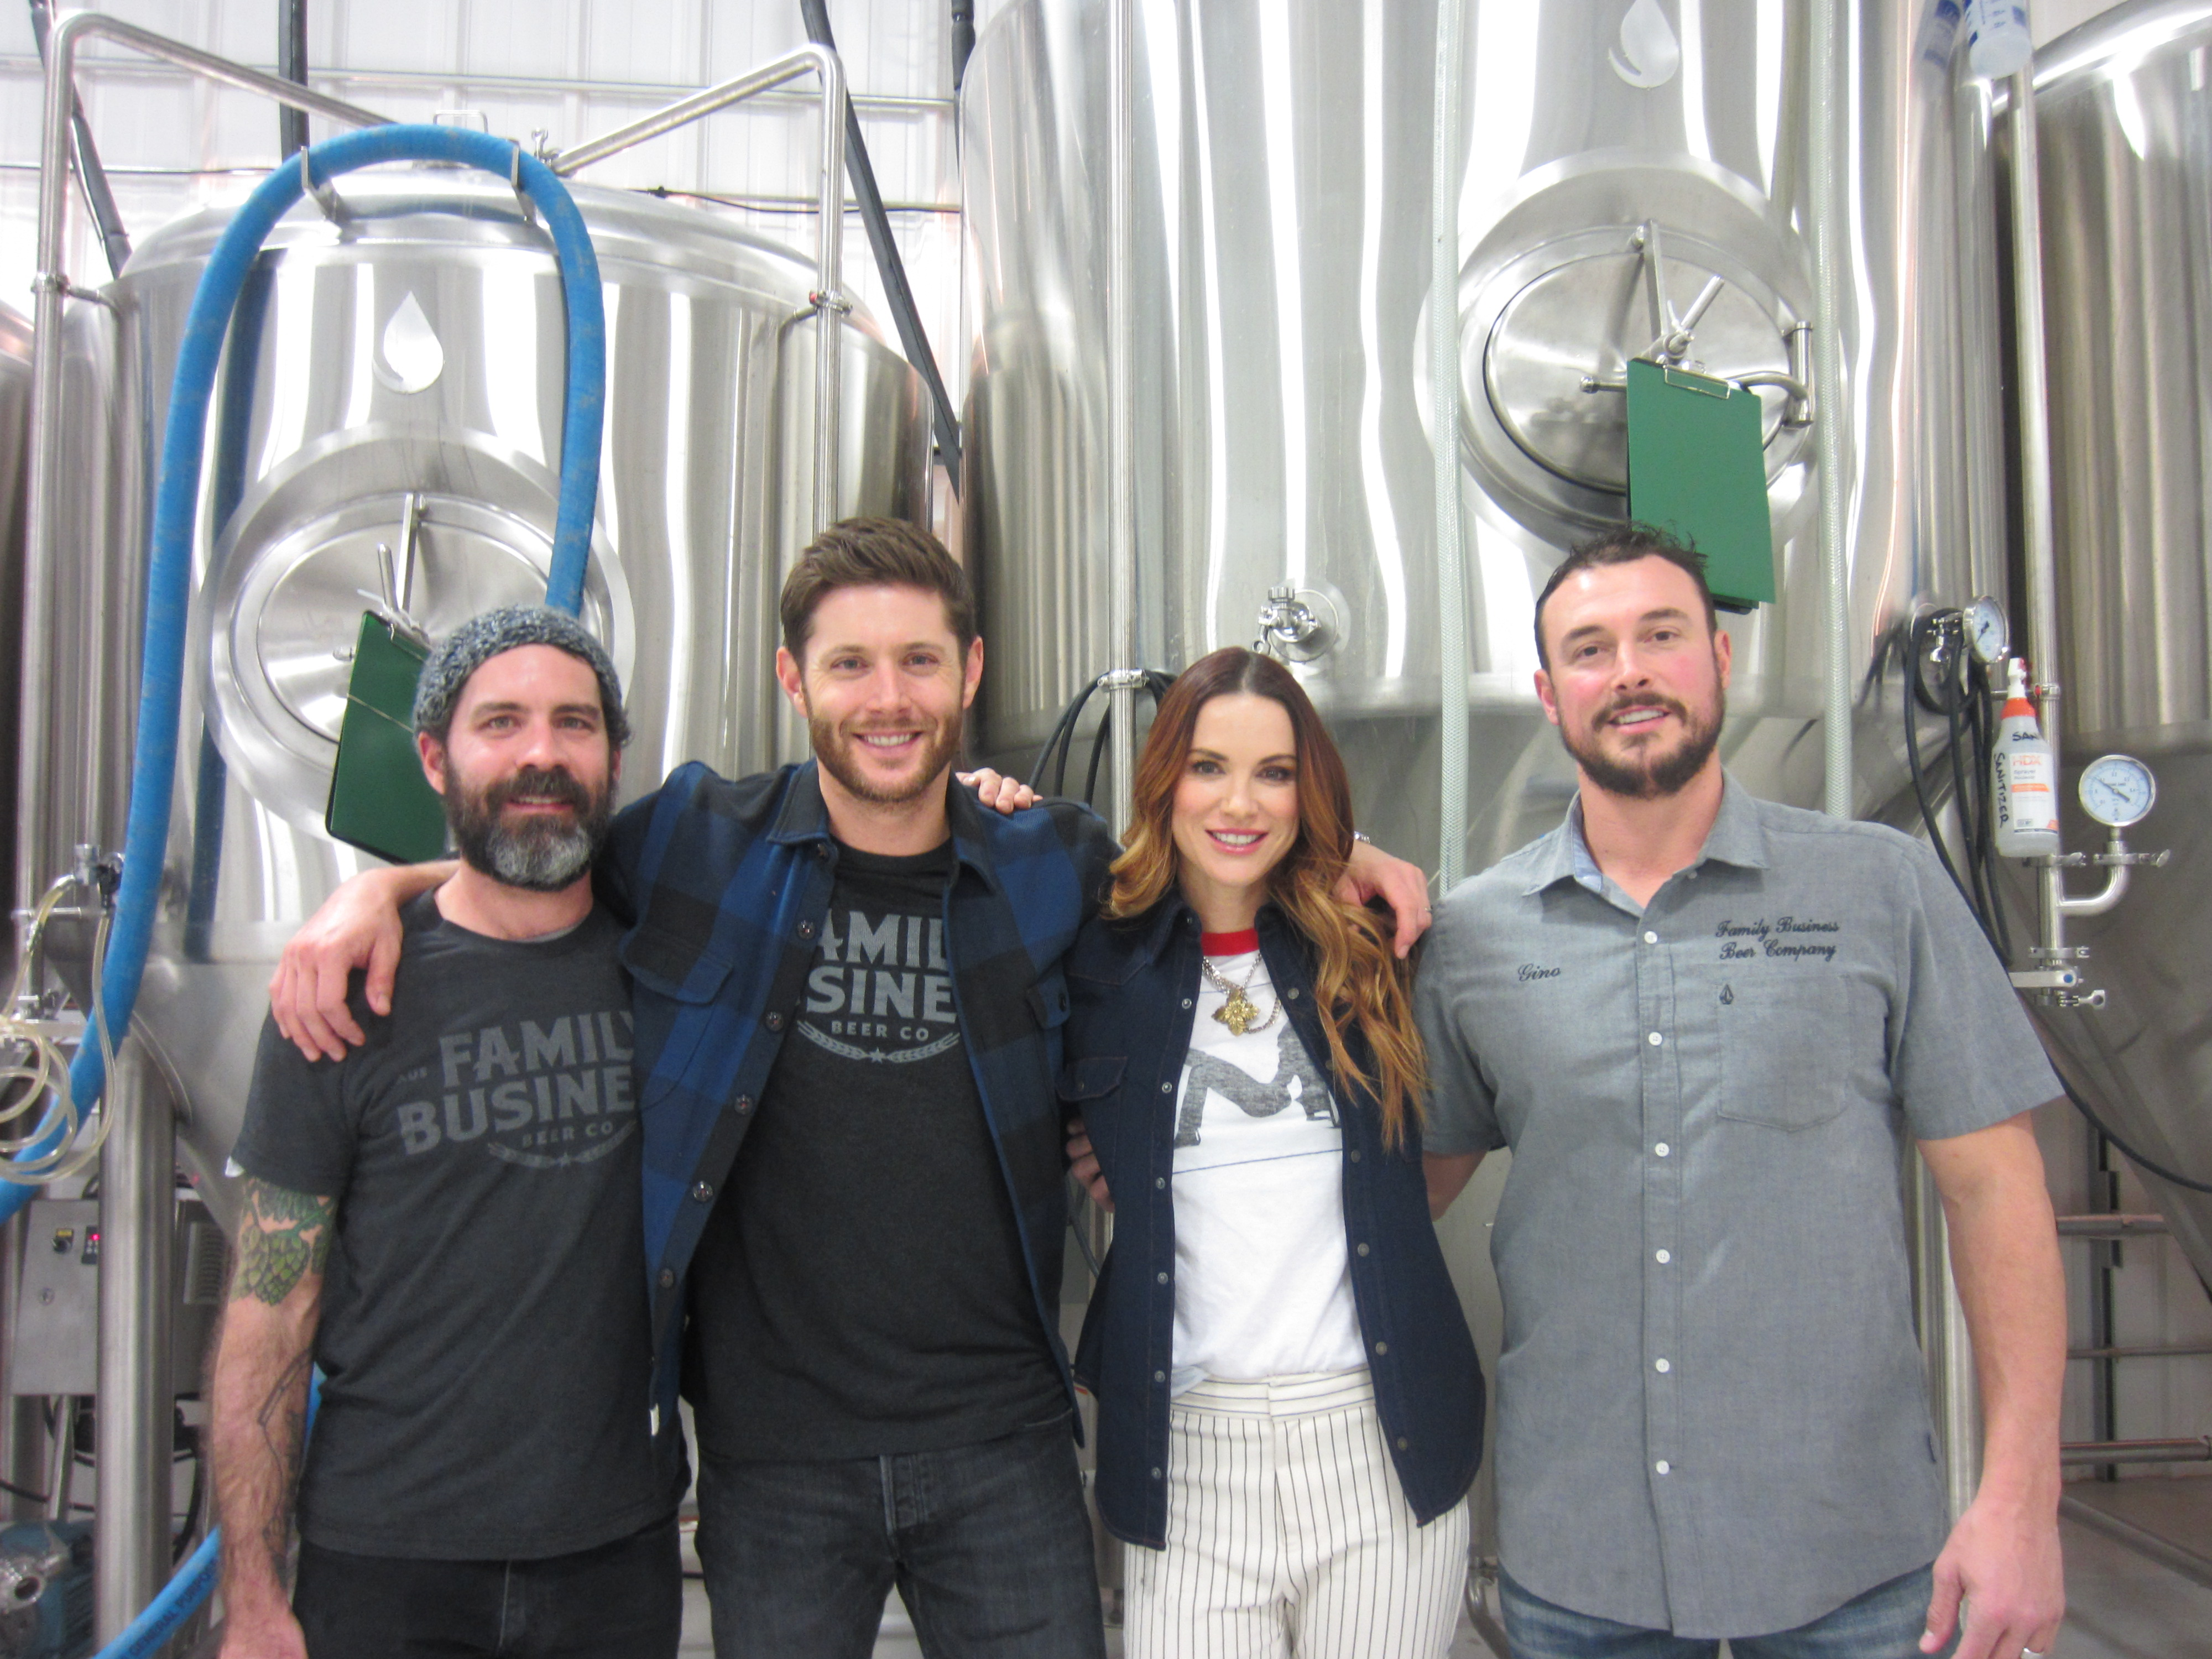 Supernatural' star Jensen Ackles opens brewery on the